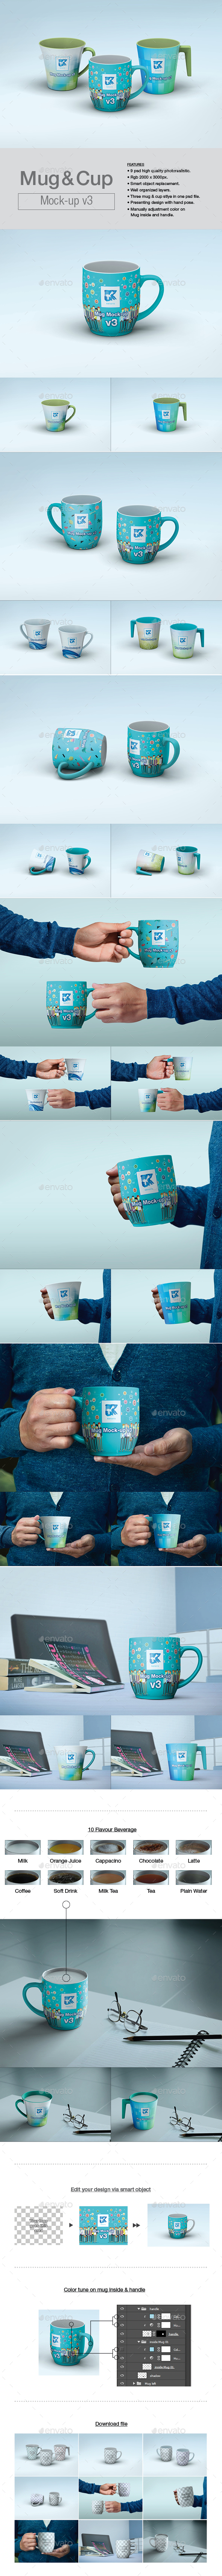 Mug & Cup Mock-up v3 - Product Mock-Ups Graphics